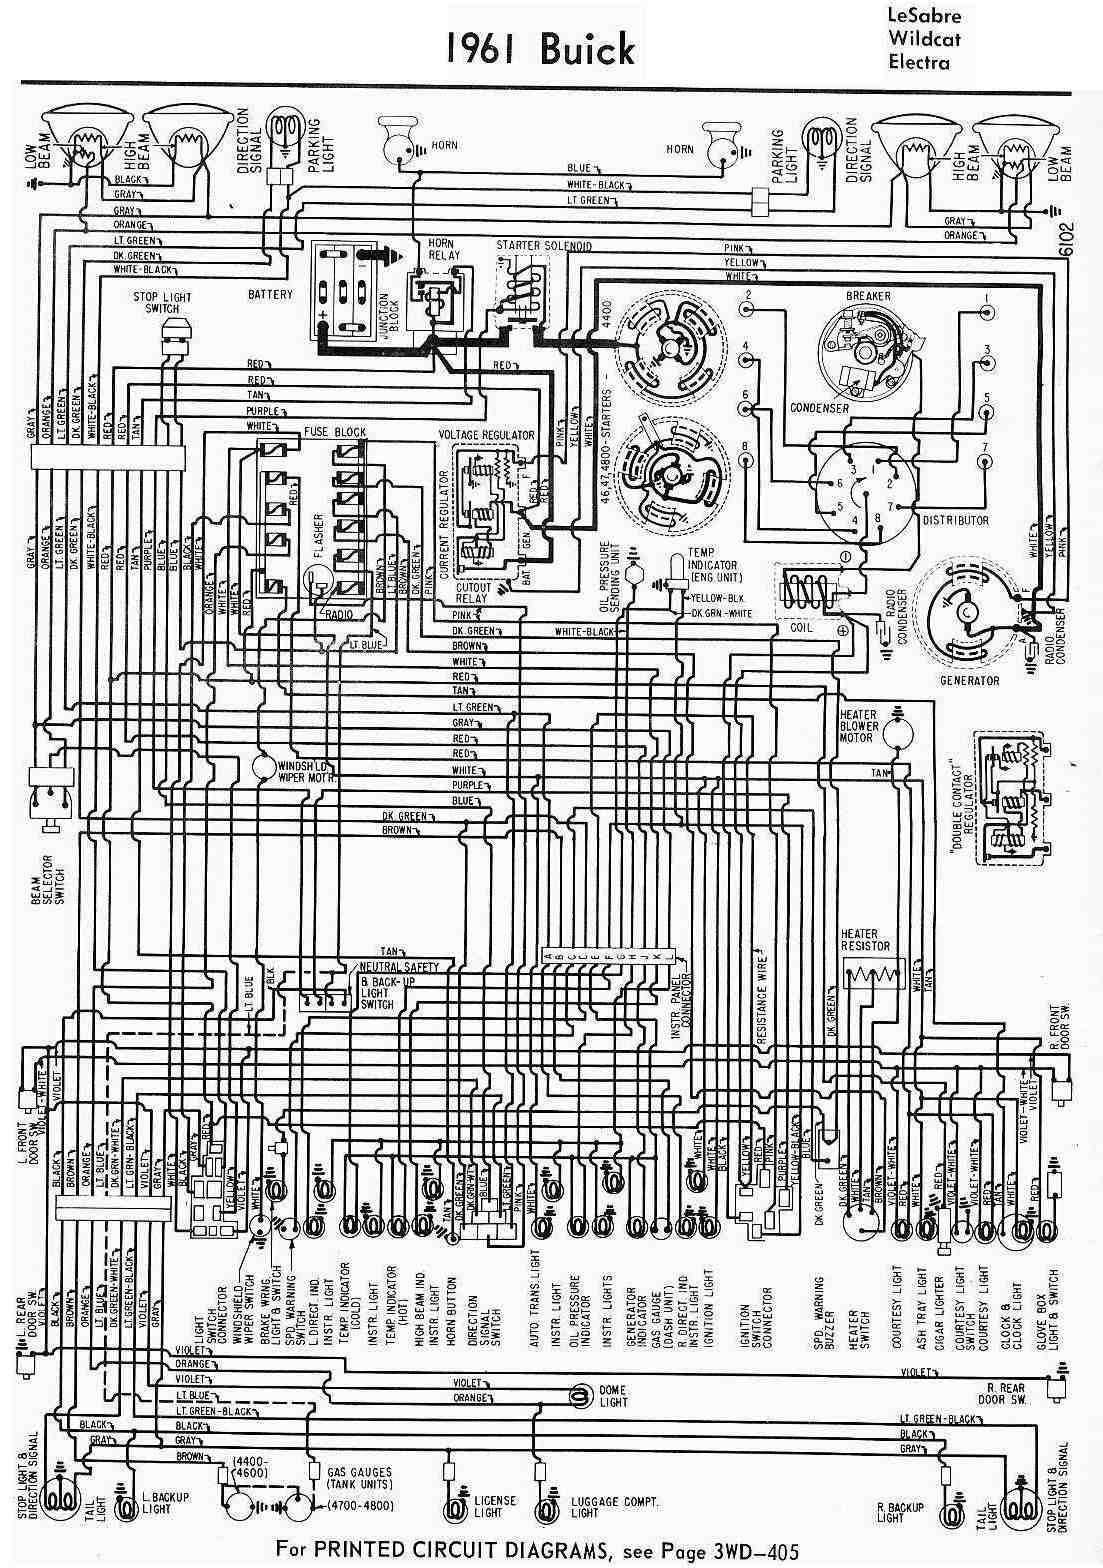 Air Conditioner Wiring Diagram 2000 Buick Lesabre 1990 Mazda Mpv Fuse Box 95 Riviera Cooling Fan Relay Location Get Free Engine Custom